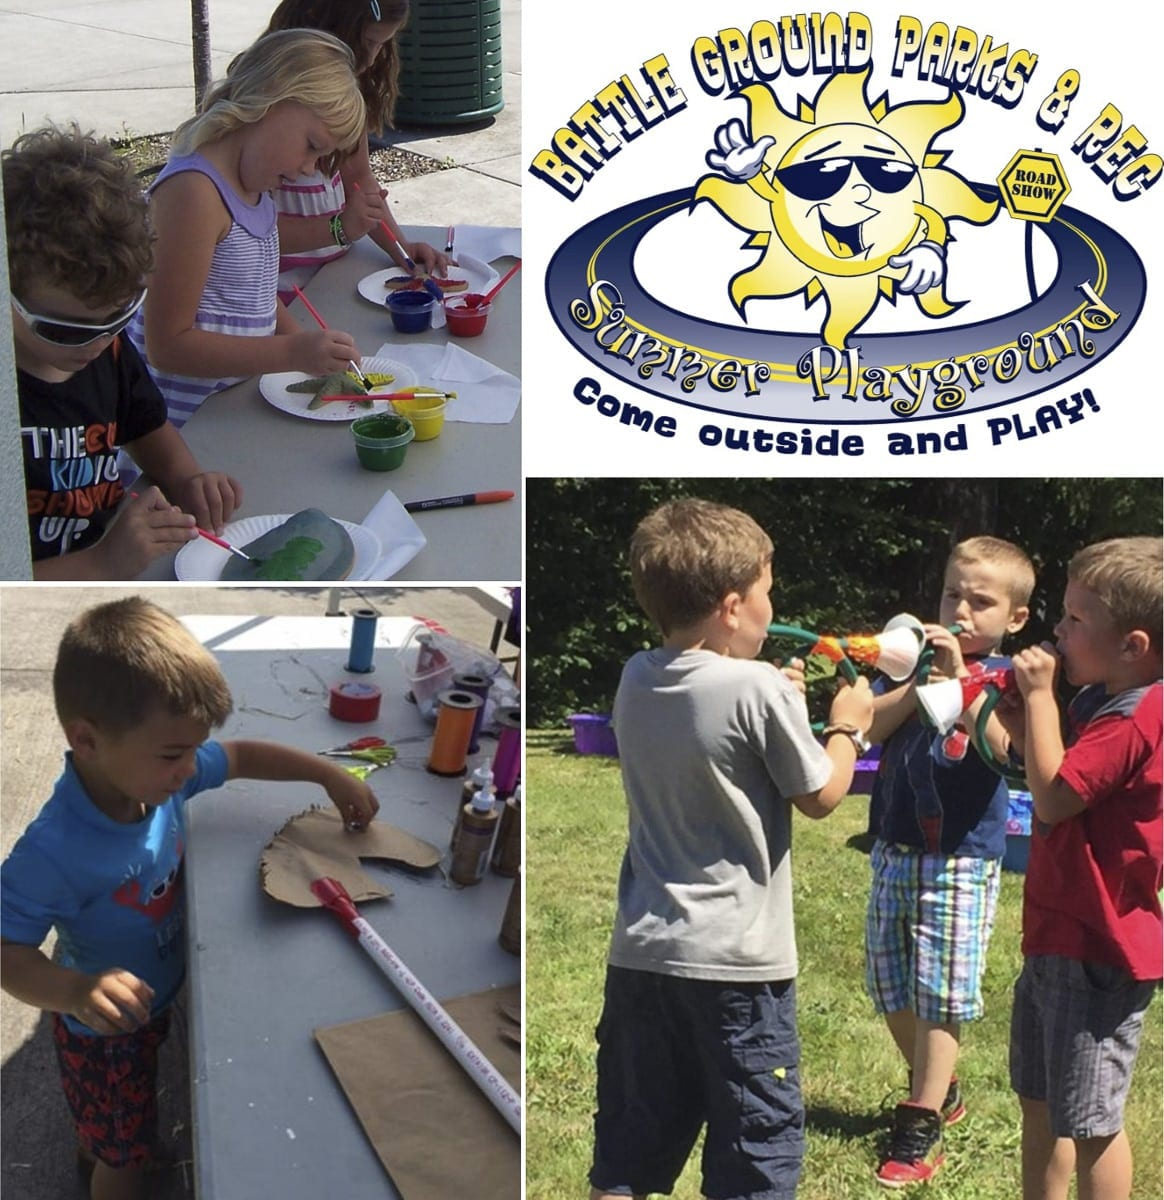 Battle Ground's free Summer Playground Program is designed for children aged 4-10, brings fun recreational activities to four Battle Ground parks each Wednesday and Thursday of the 9-week summer break. Photo courtesy of city of Battle Ground